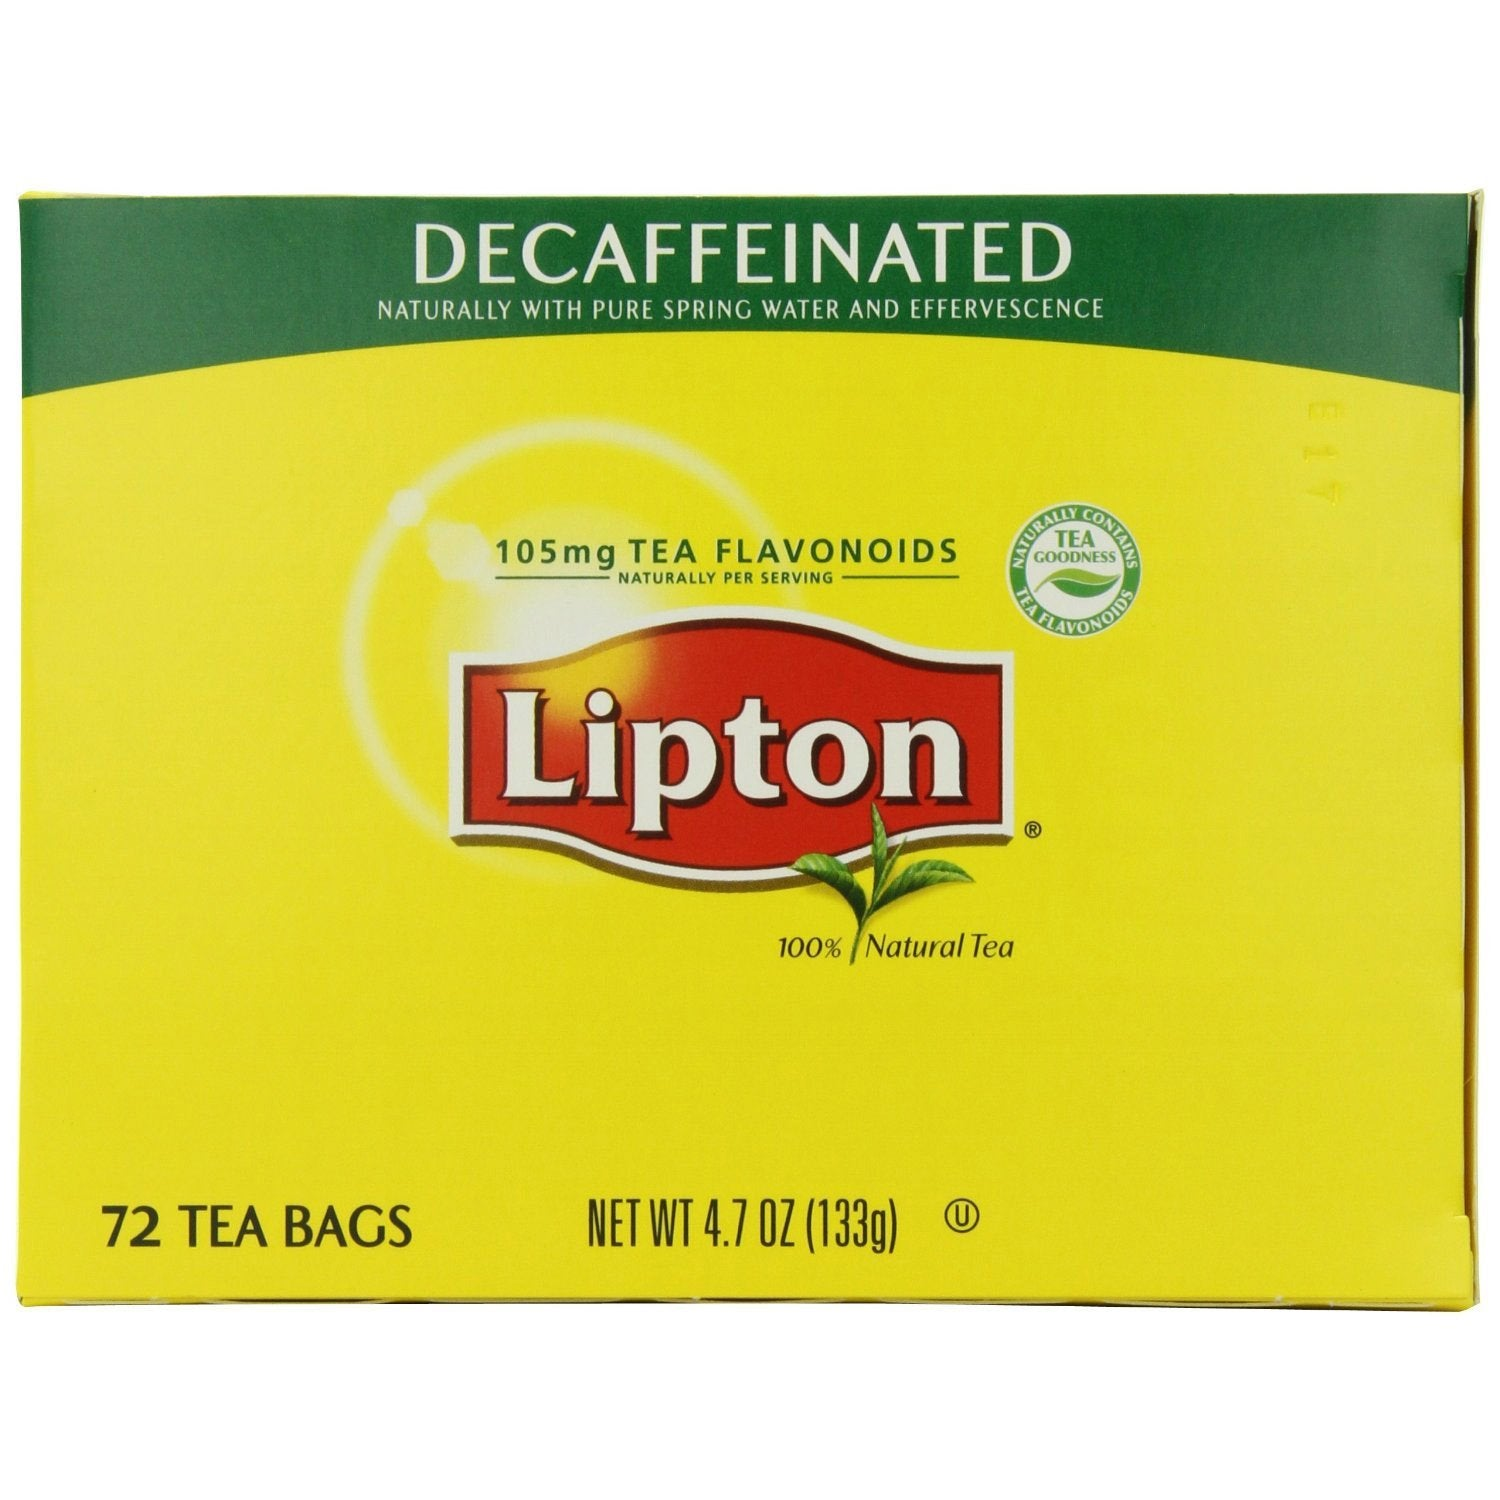 Lipton Tea Bags - All Natural - DECAF - 72ct Box, Cases of 6 Boxes from Vistar